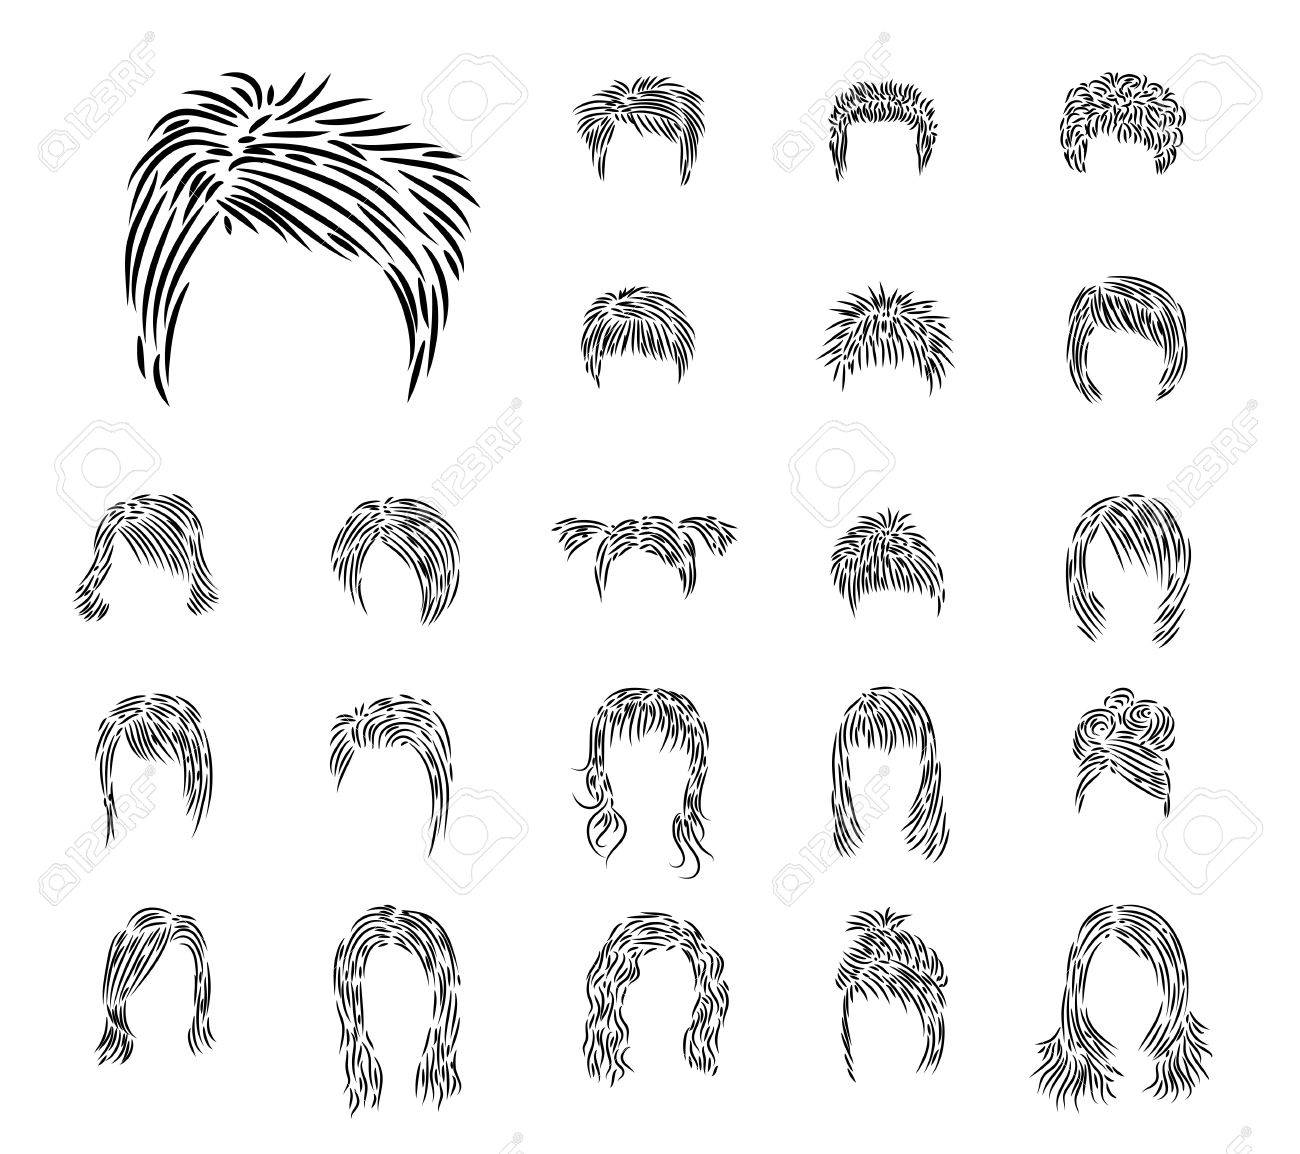 Clip-art from man's and female hairdresses a black brush Stock Vector - 11657586